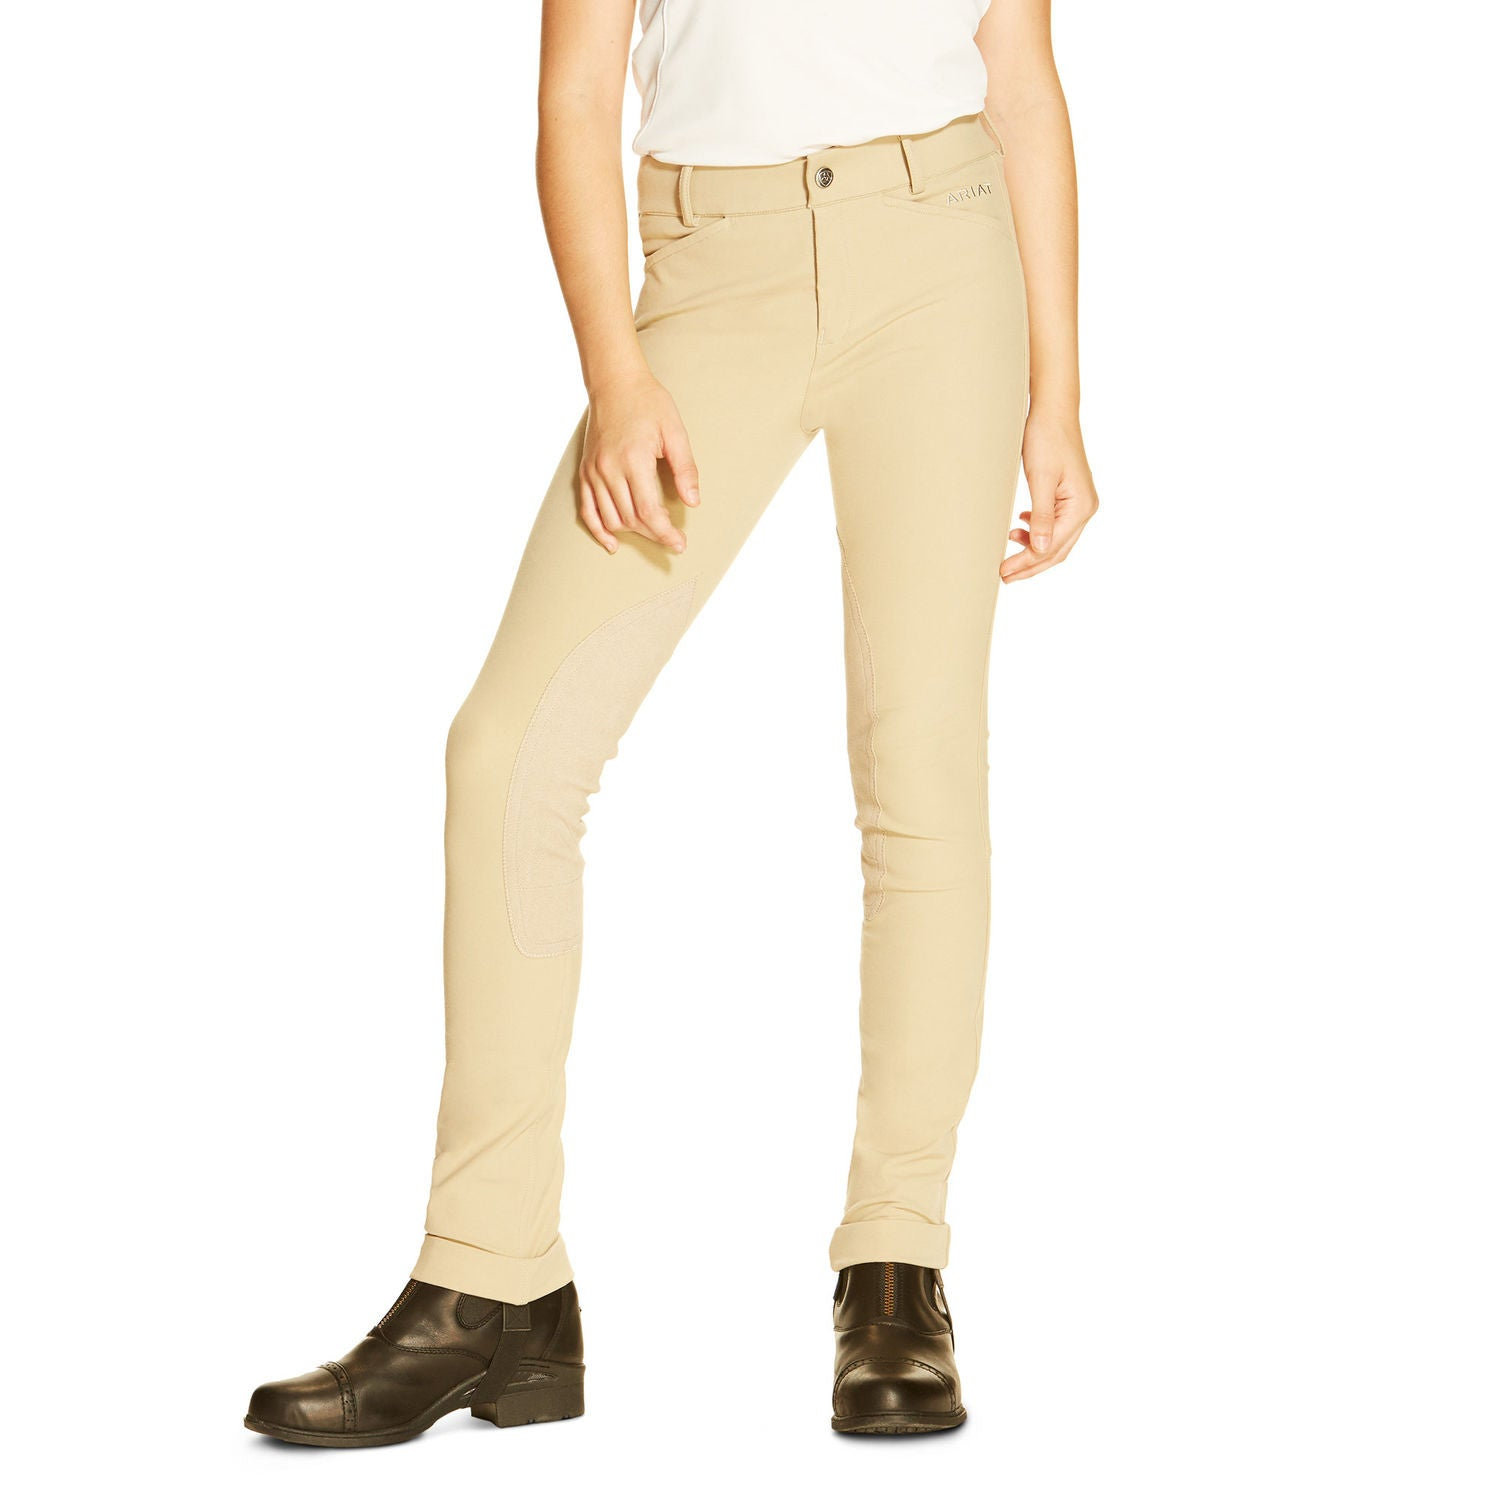 Ariat Kids Performer Front Zip Jodhpurs - North Shore Saddlery